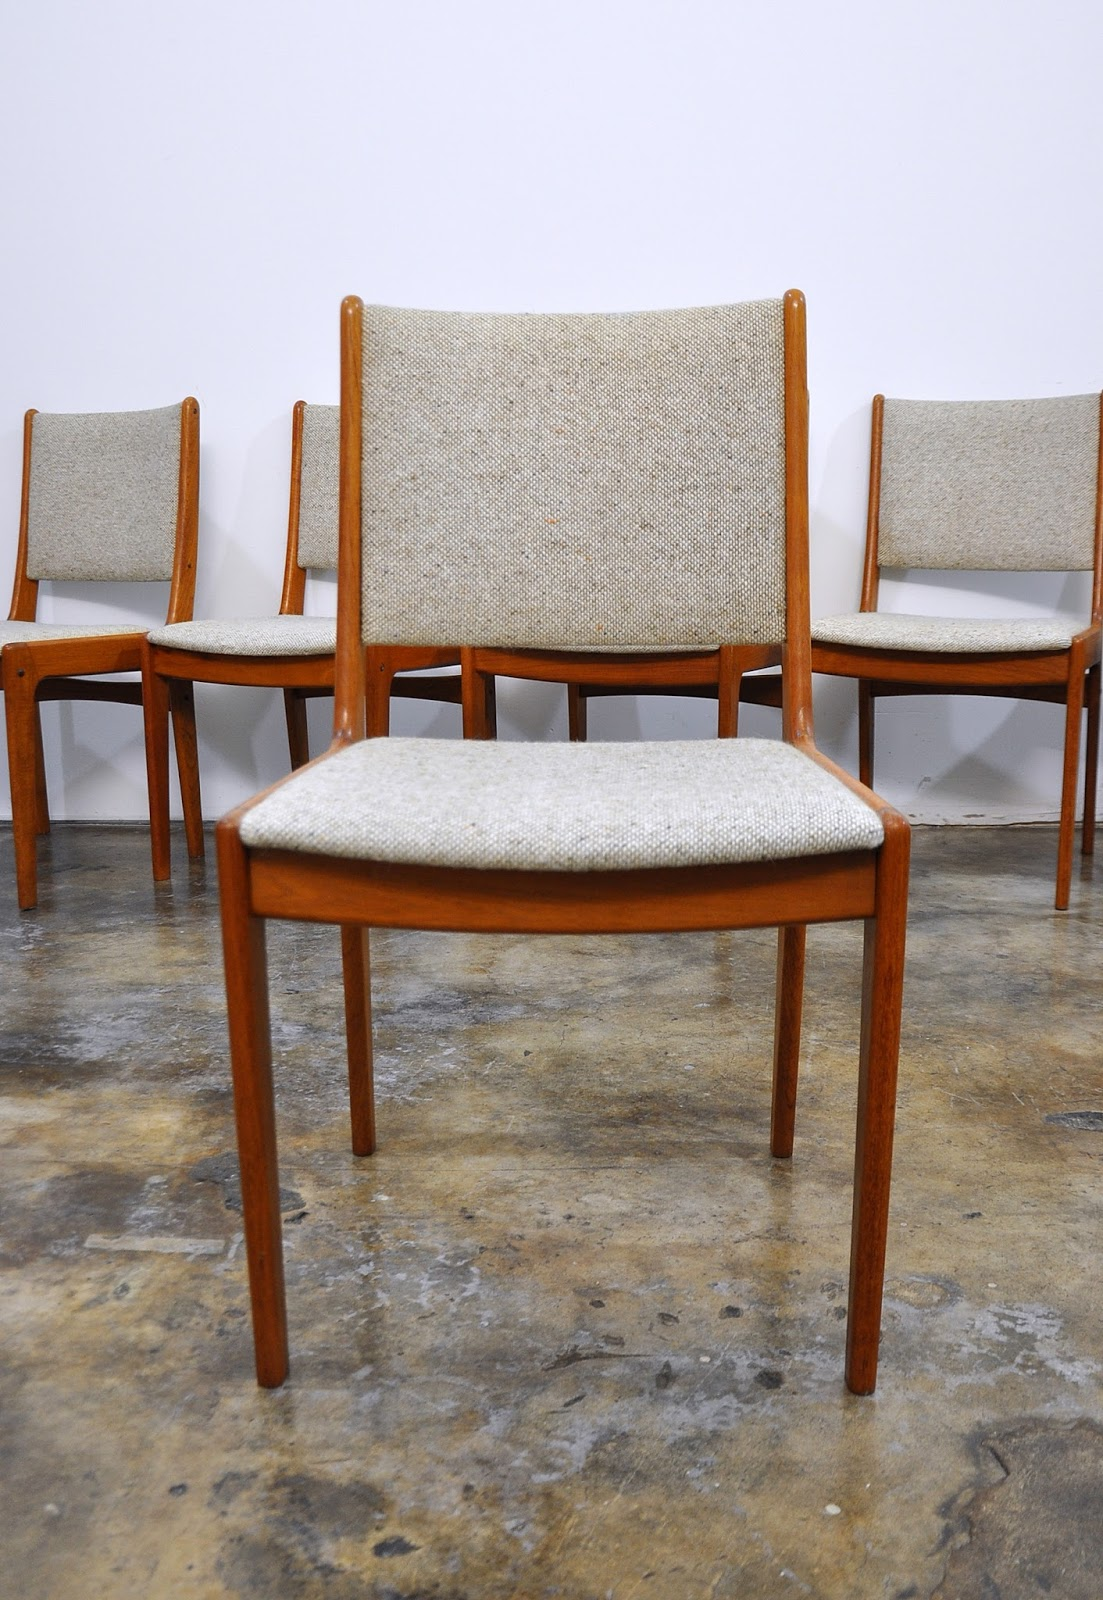 Danish Teak Dining Chairs Select Modern Set Of 6 Danish Modern Teak Dining Chairs